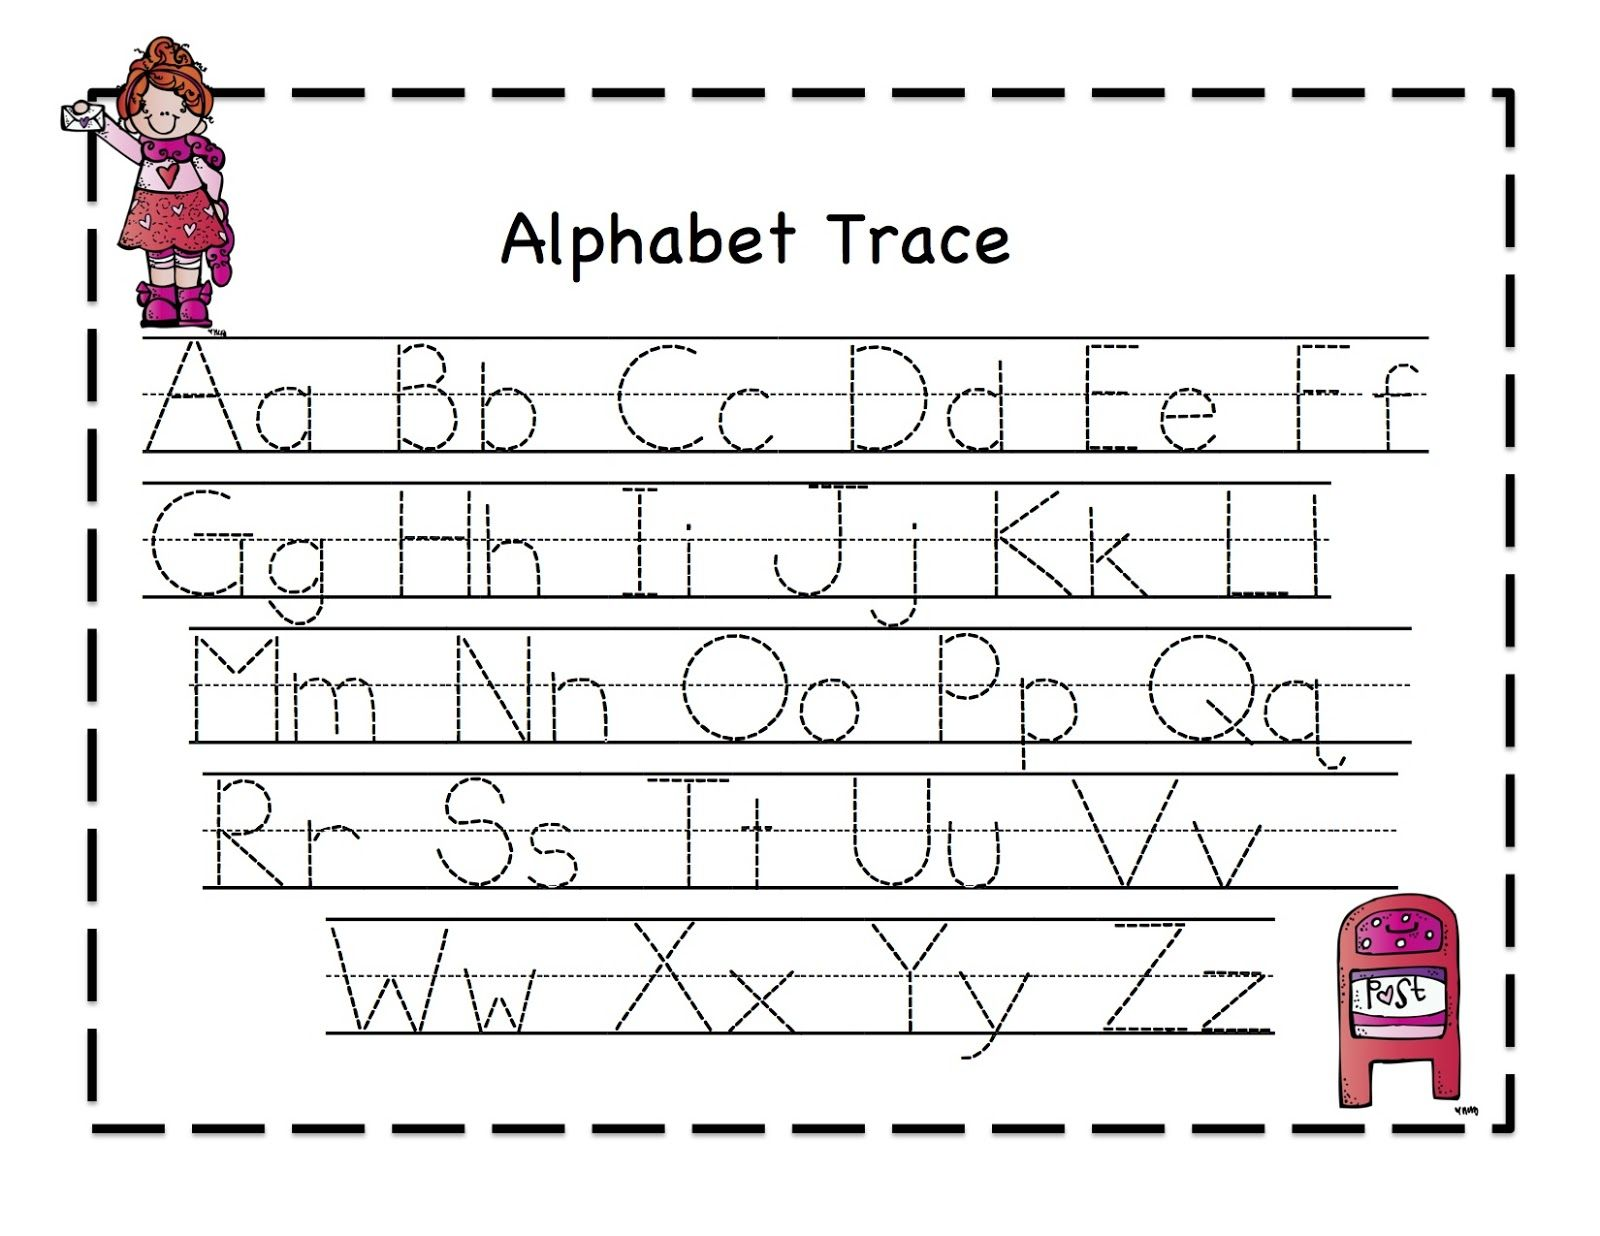 Worksheets Abc Traceable Worksheets abc tracing sheets for preschool kids kiddo shelter alphabet extent fun learning with worksheets loving printable smart eworksheet